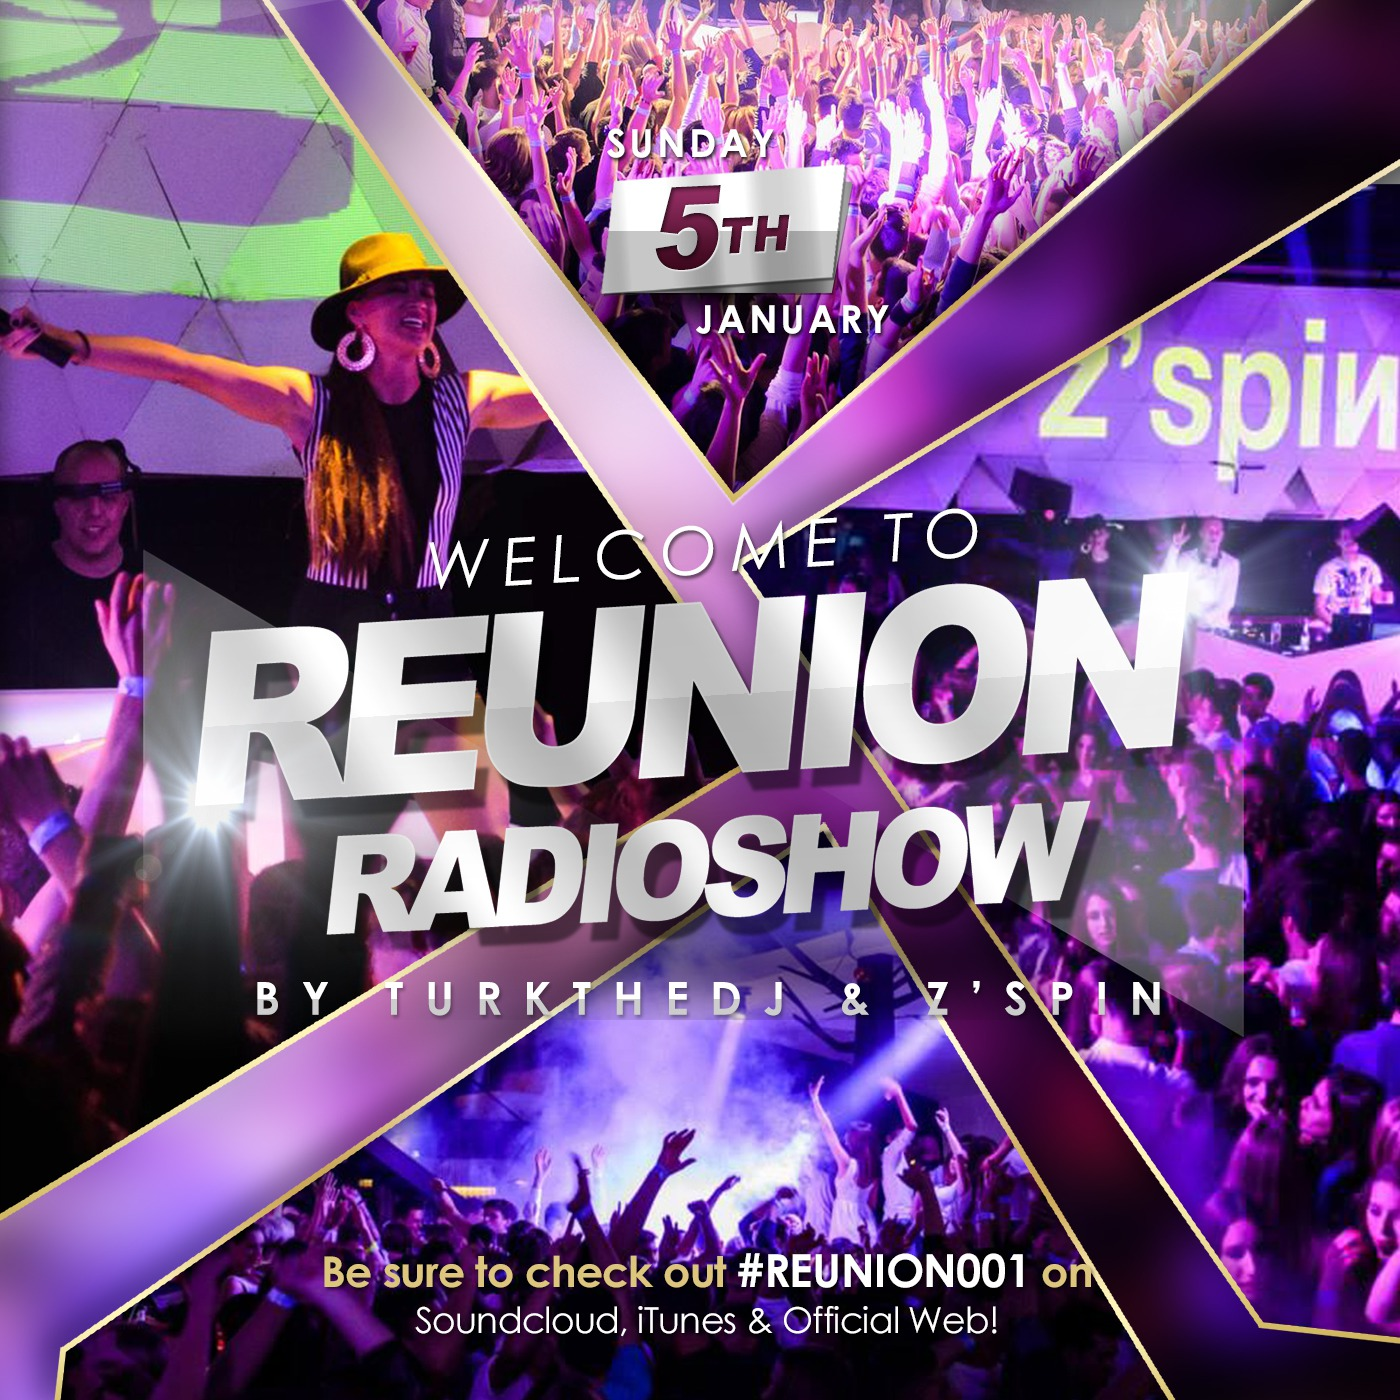 Reunion Radioshow by Turkthedj & Z'Spin